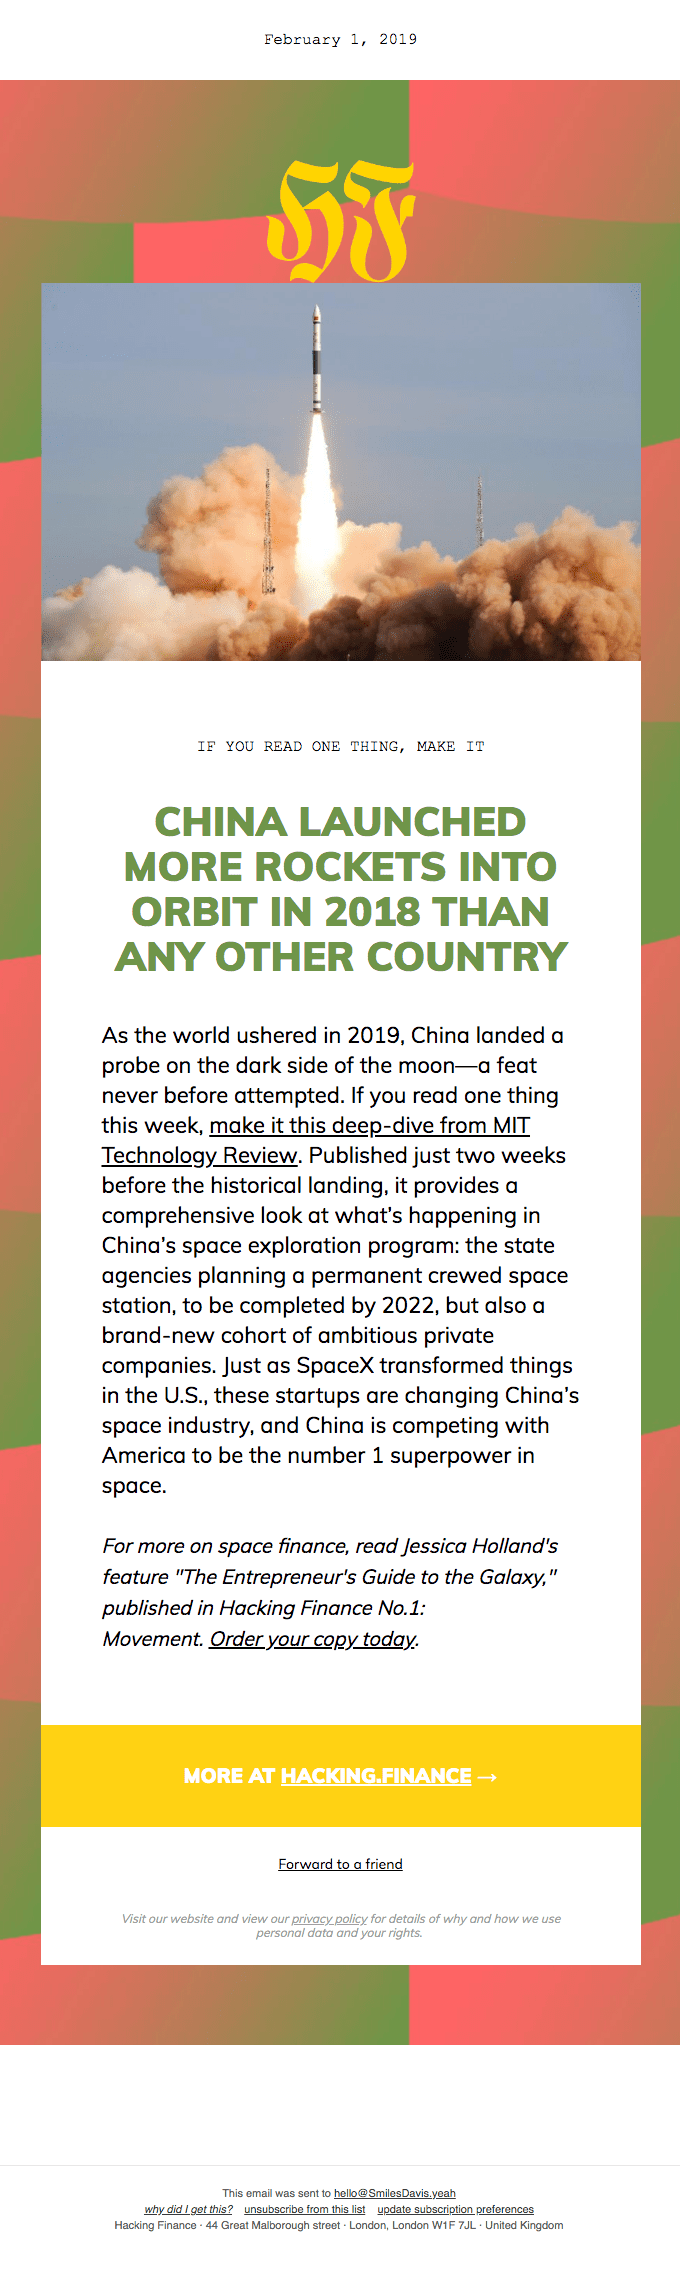 IYR1T: China's Space Industry